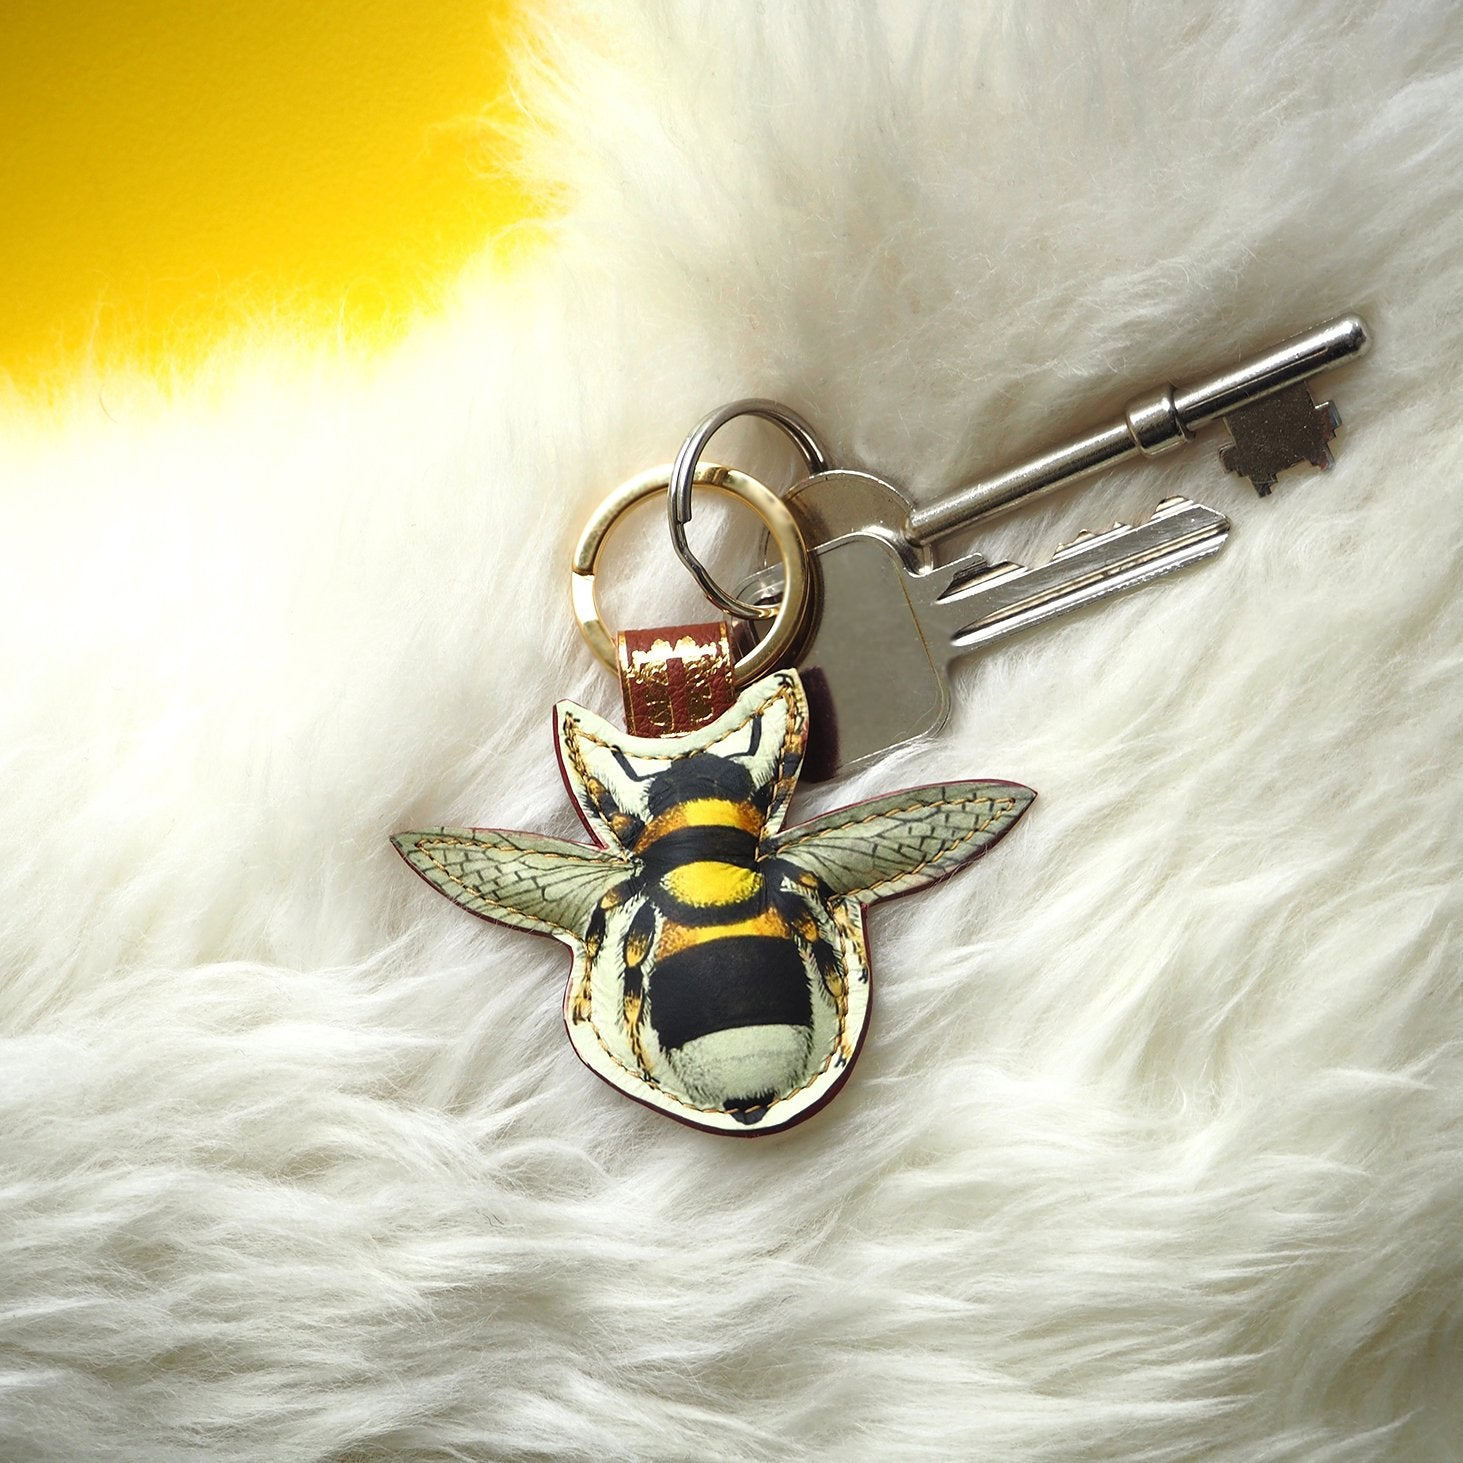 Leather Key Ring / Bag Charm - Bee Key Ring / Bag Charm Tovi Sorga Yellow